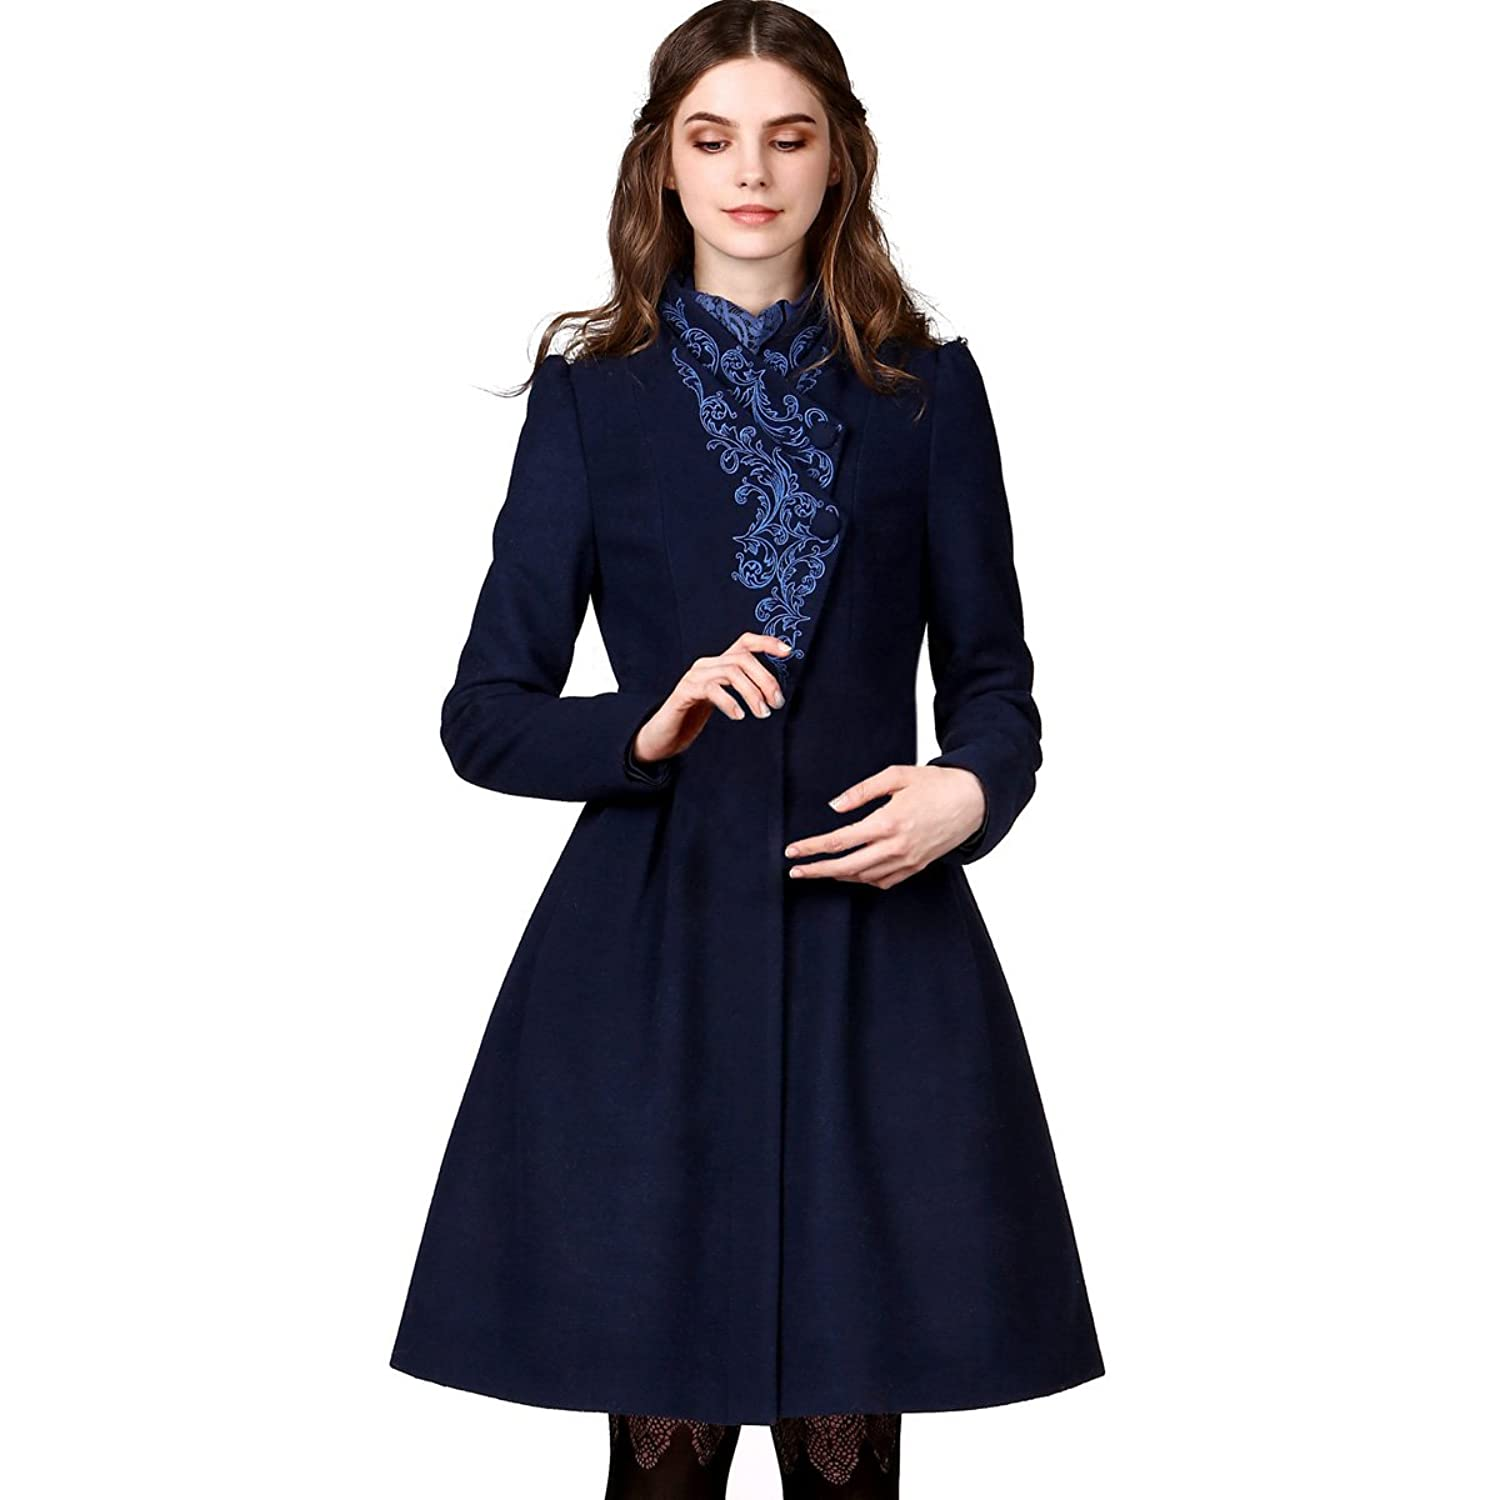 Vintage Coats & Jackets | Retro Coats and Jackets Vintage Embroidered Cinch Waist Woolen Dress Coat FA10149Q $89.00 AT vintagedancer.com